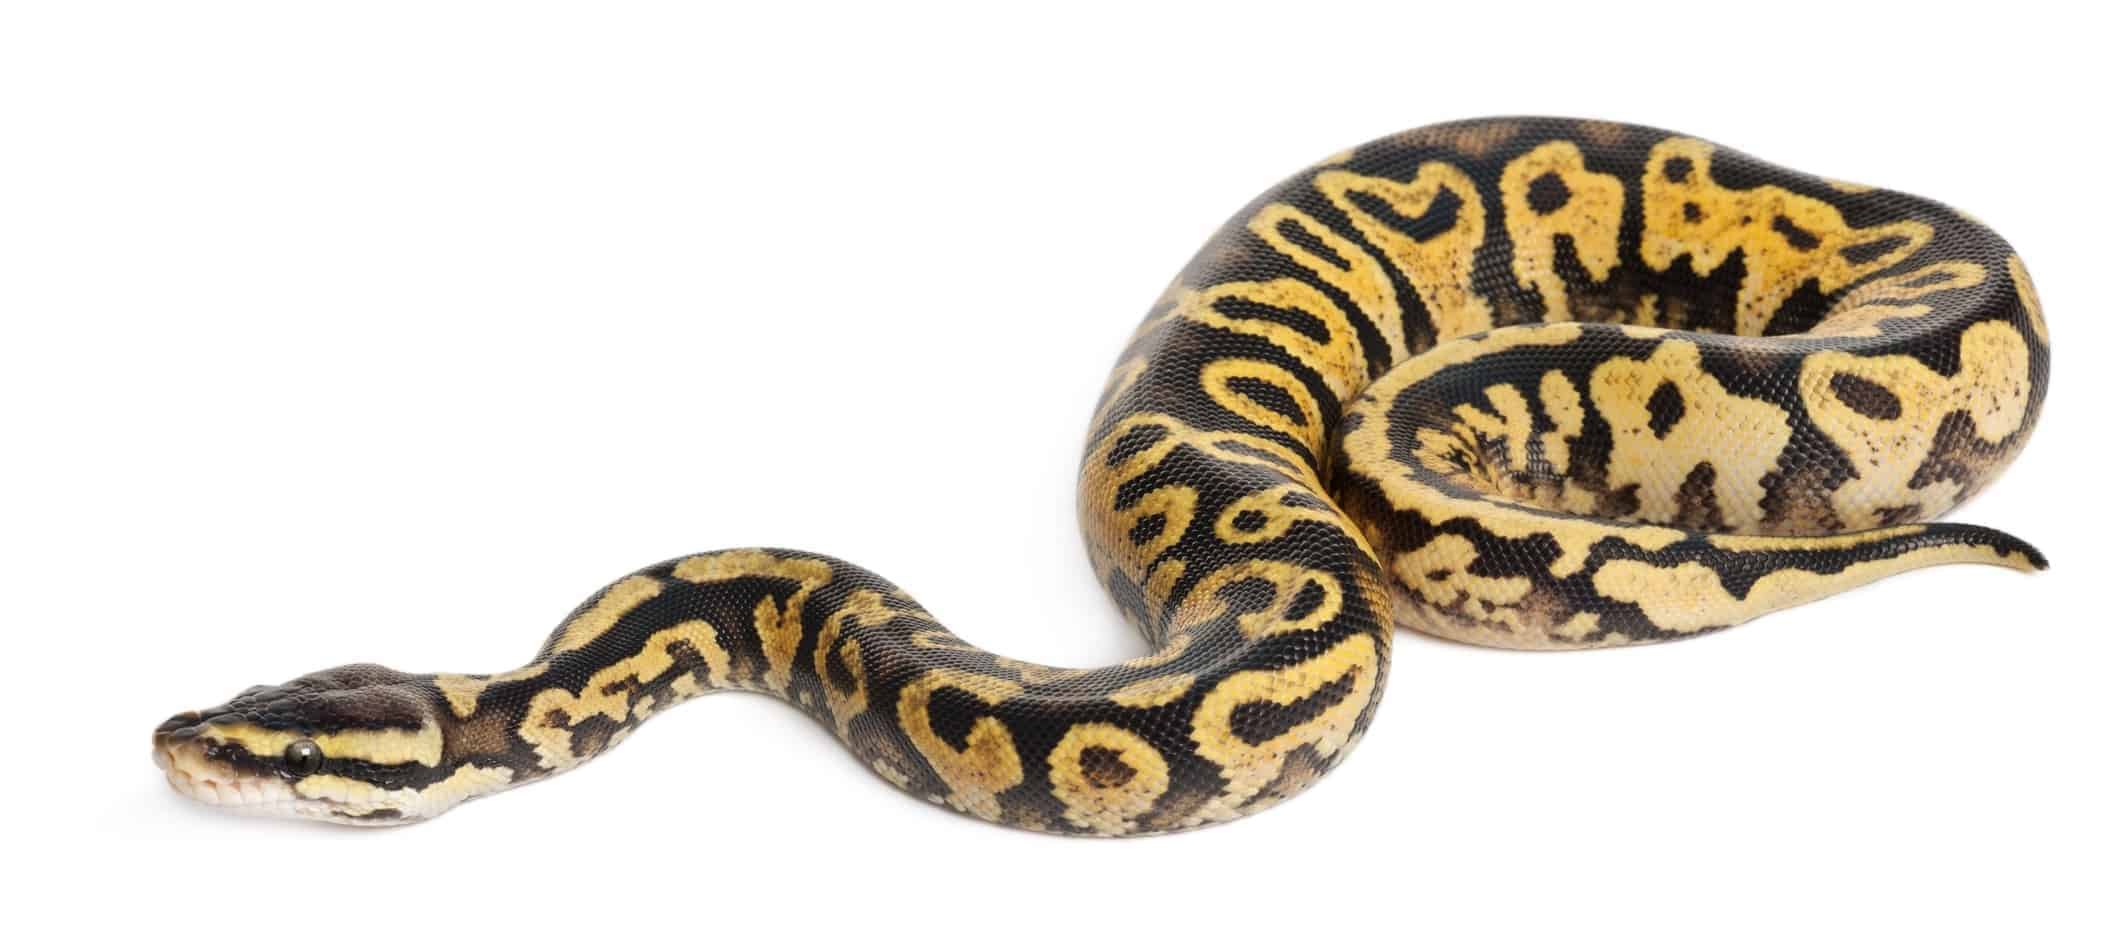 Bumblebee Ball Pythons: 10 Cool Facts With Pictures